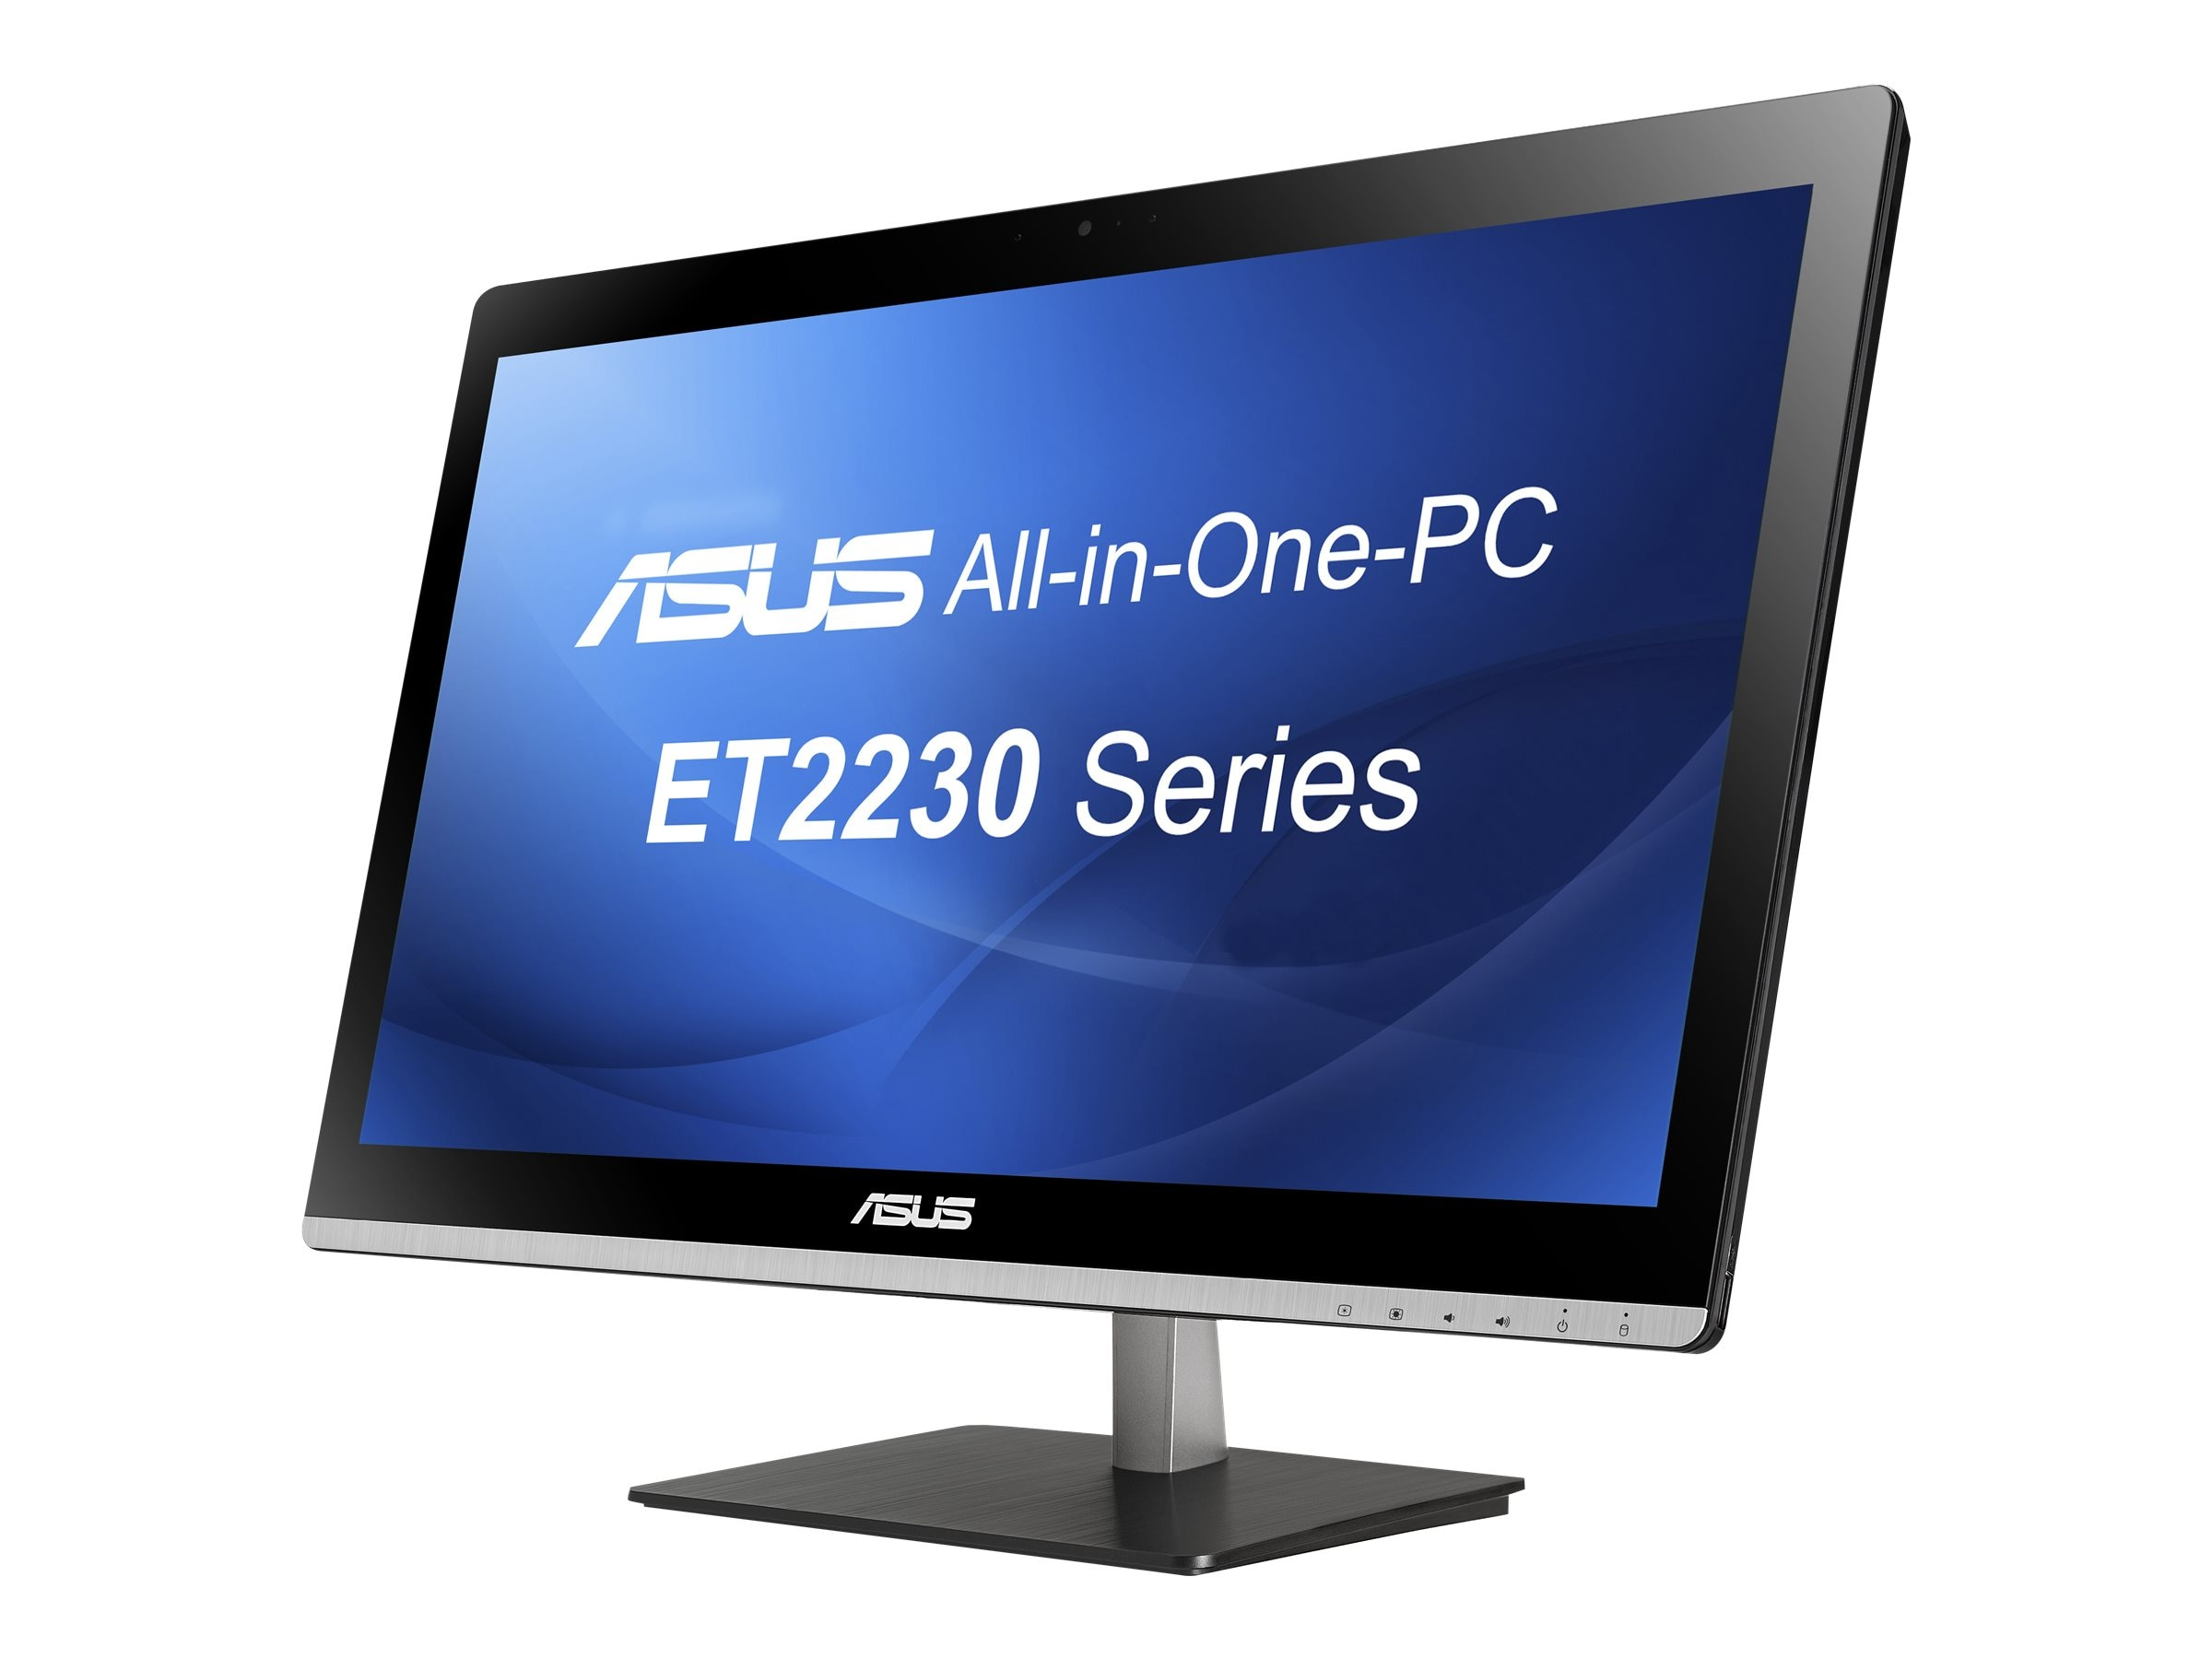 Asus ET2230IUT-C1 AIO Pentium G3240T 2.9GHz 4GB 1TB IntelHD DVD-RW ac BT WC 21.5 FHD MT W8.164, ET2230IUT-C1, 17950133, Desktops - All-in-One